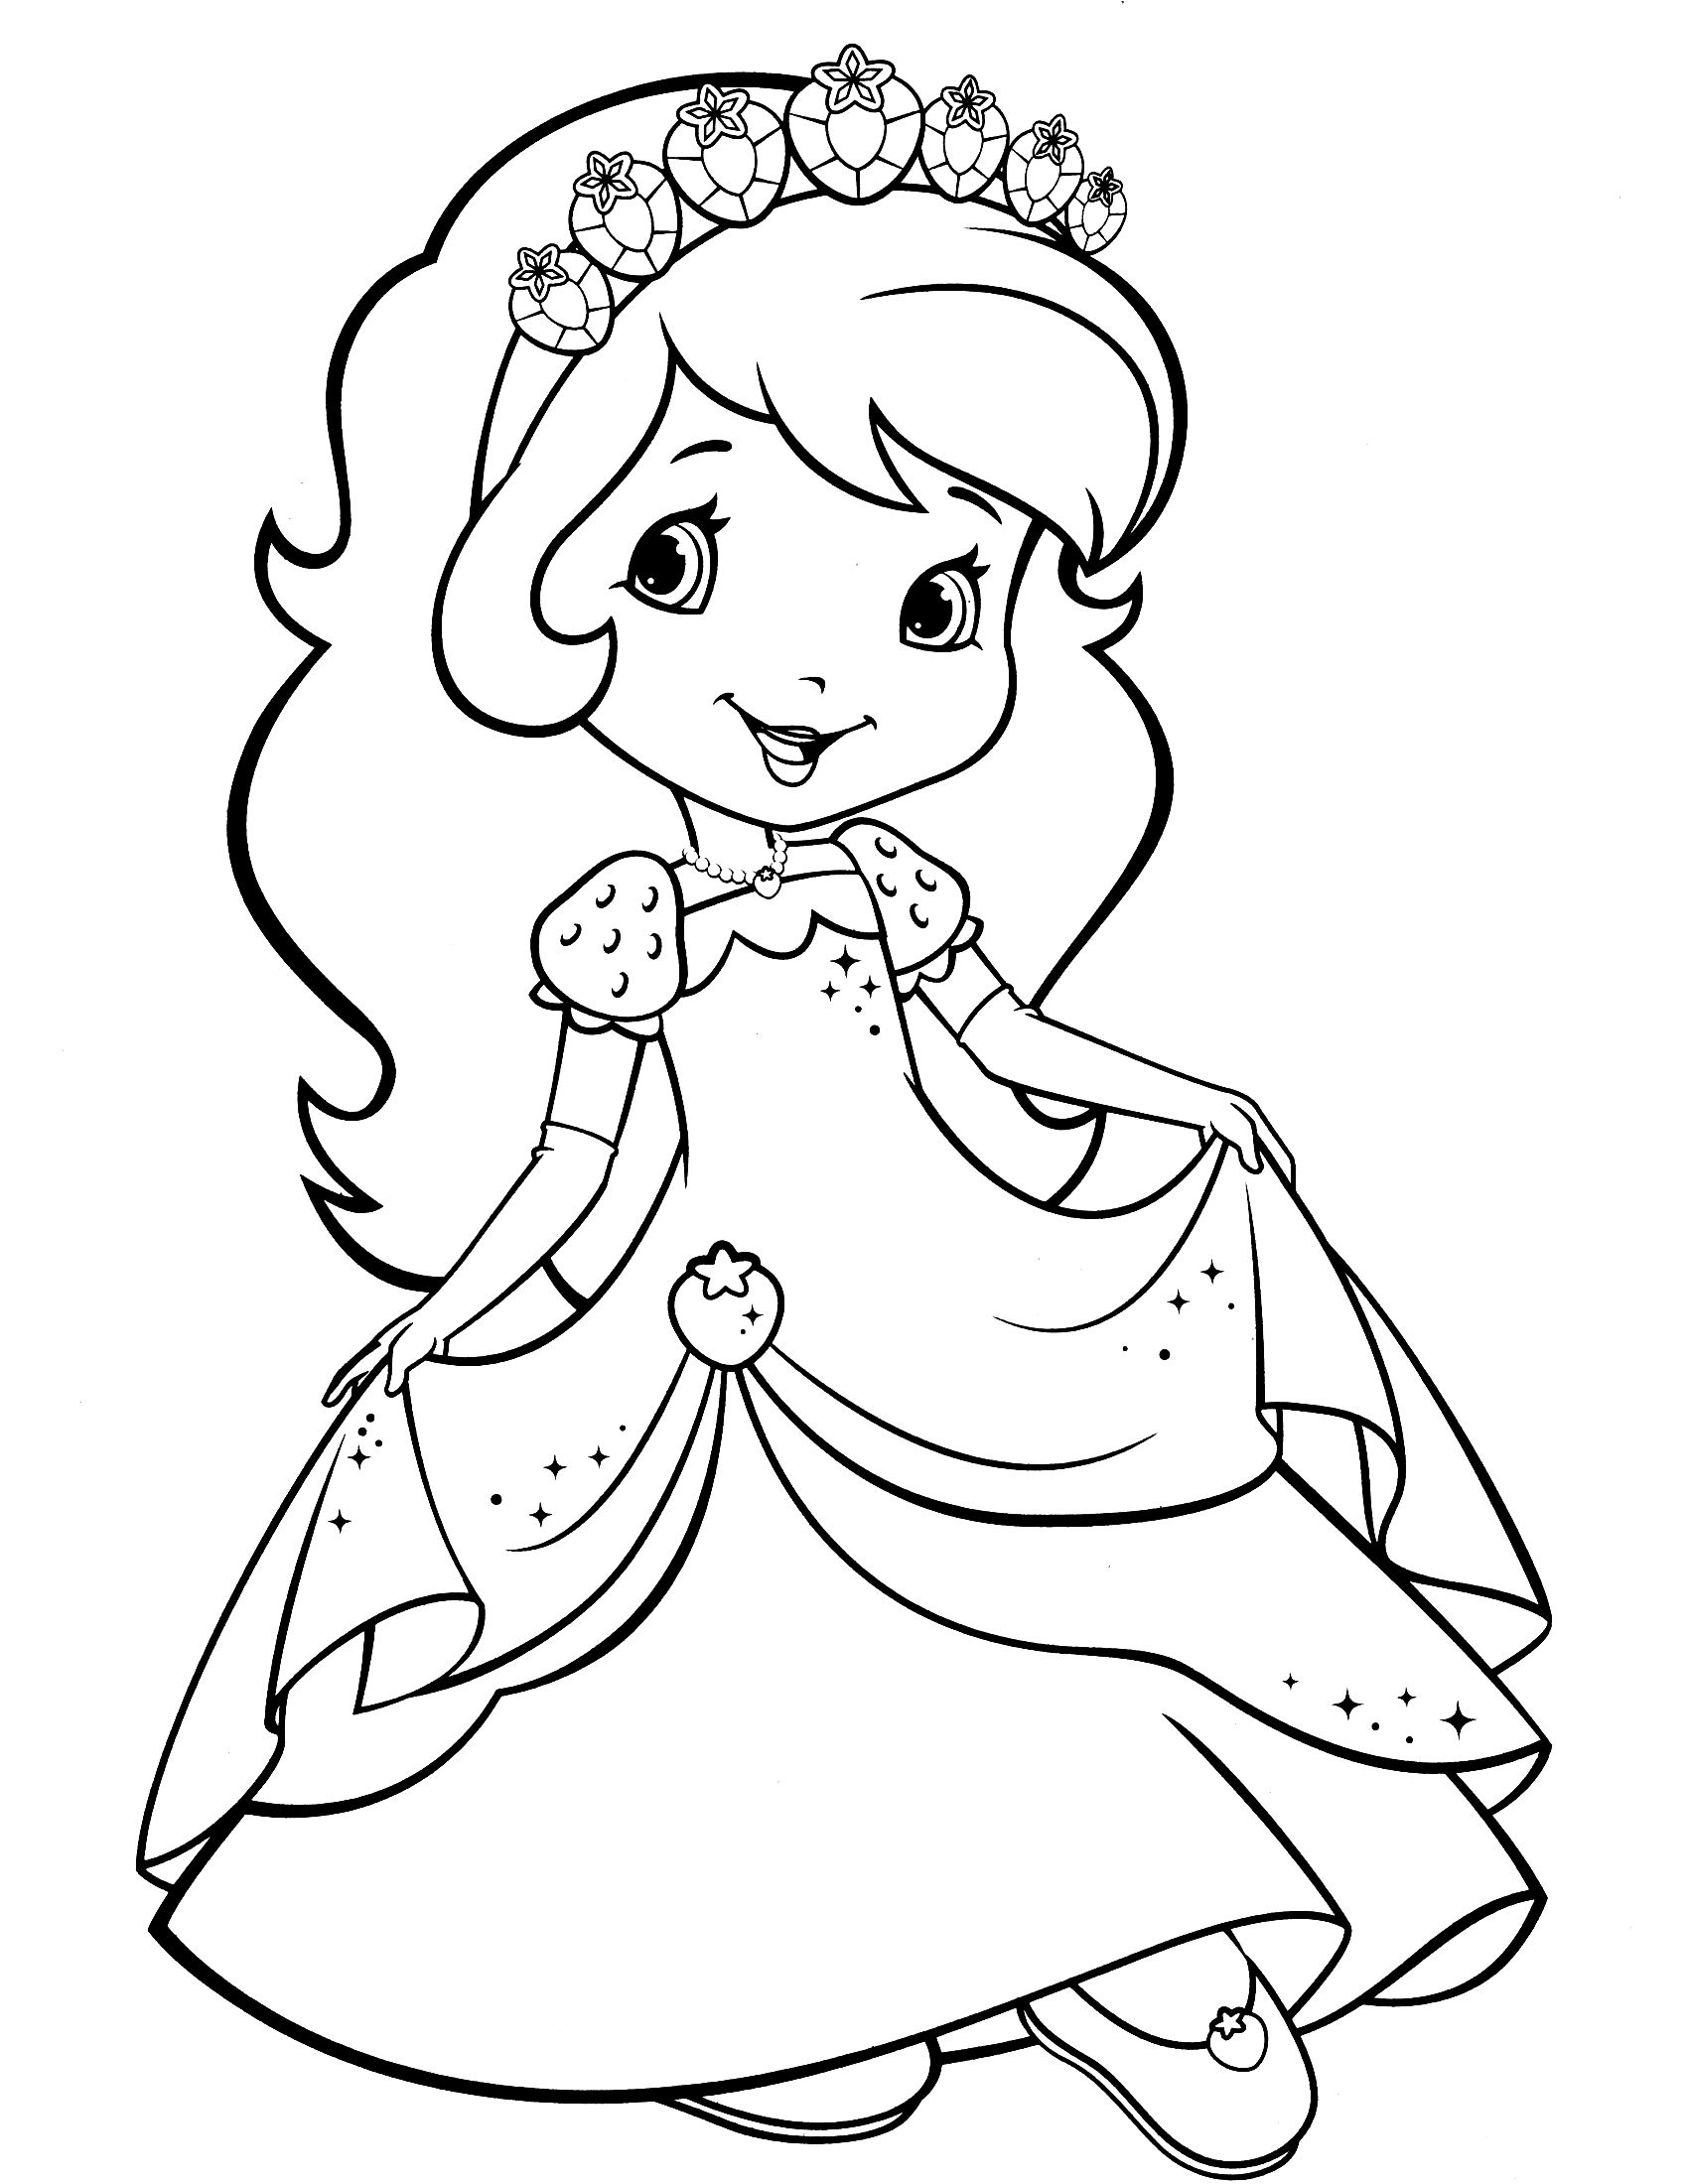 strawberry shortcake coloring page fresitas Pinterest